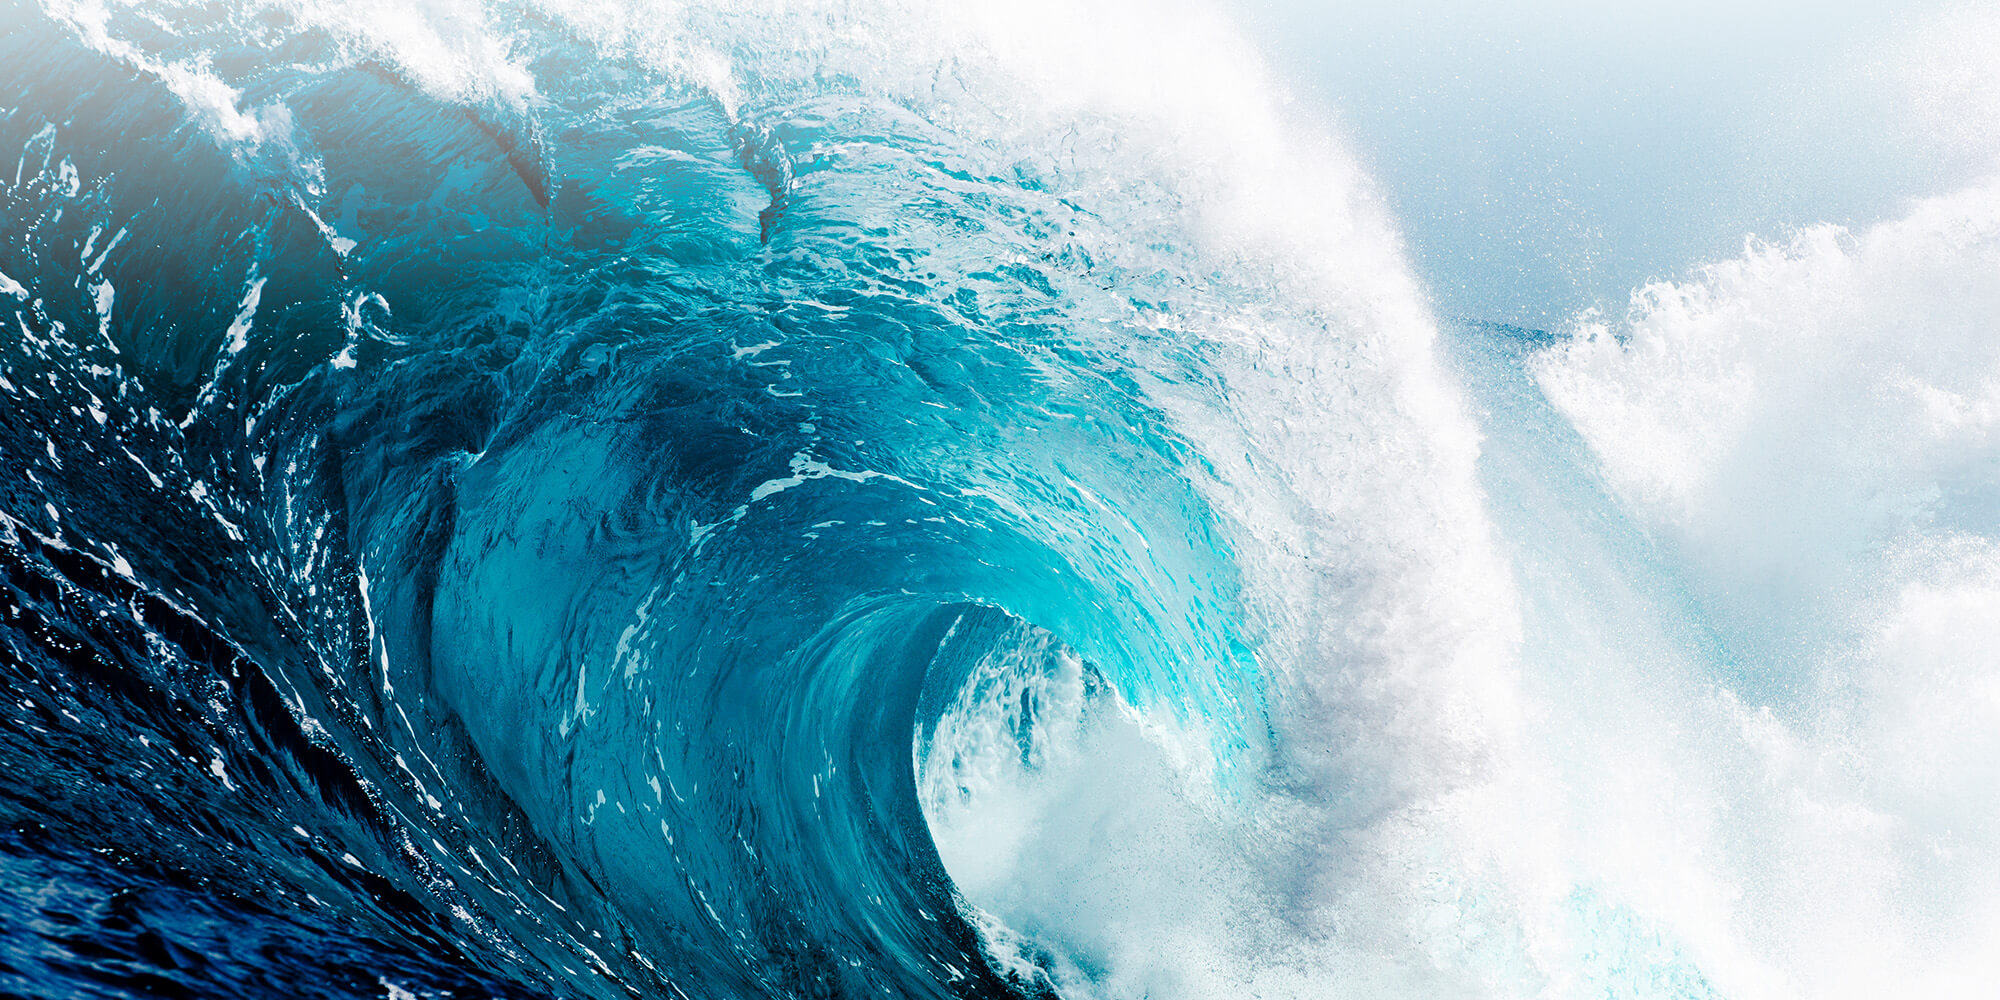 Blue wave crashing